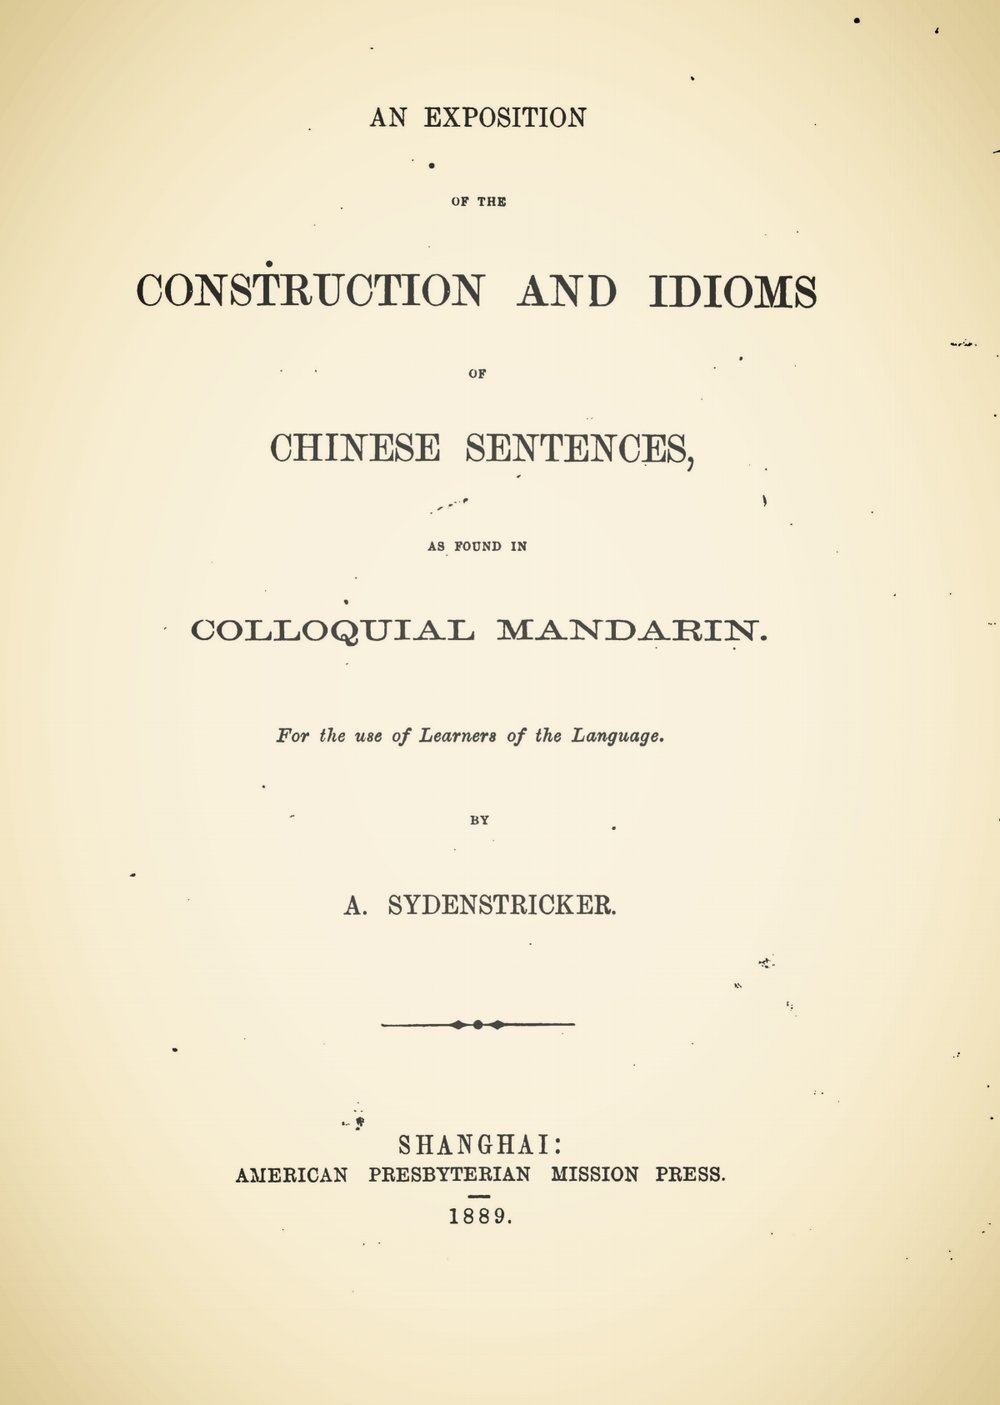 Sydenstricker, Absalom, An Exposition of the Construction and Idioms of Chinese Sentences Title Page.jpg